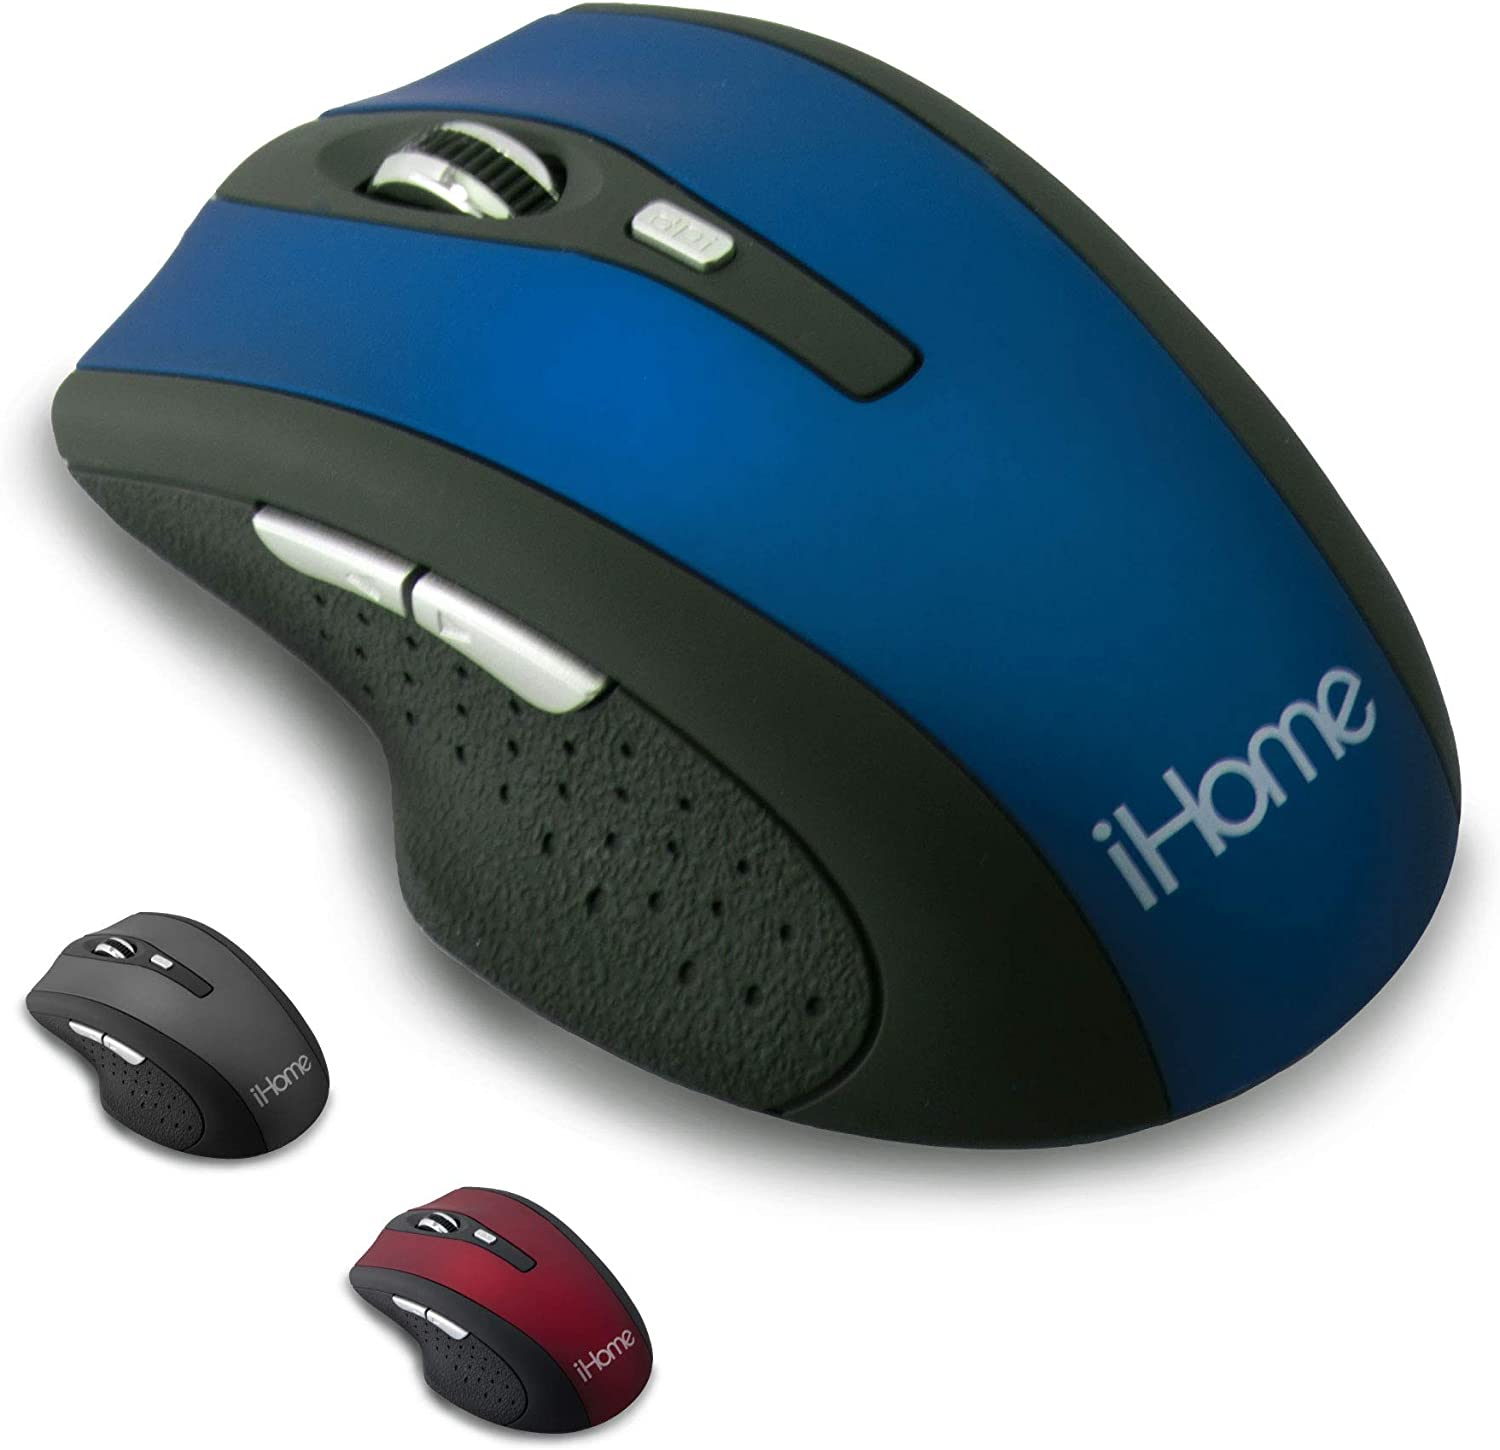 iHome Precision Wireless Desktop Mouse with Scroll Wheel, 2 Buttons, and Web Navigation (Mac and PC Compatible) (Blue)